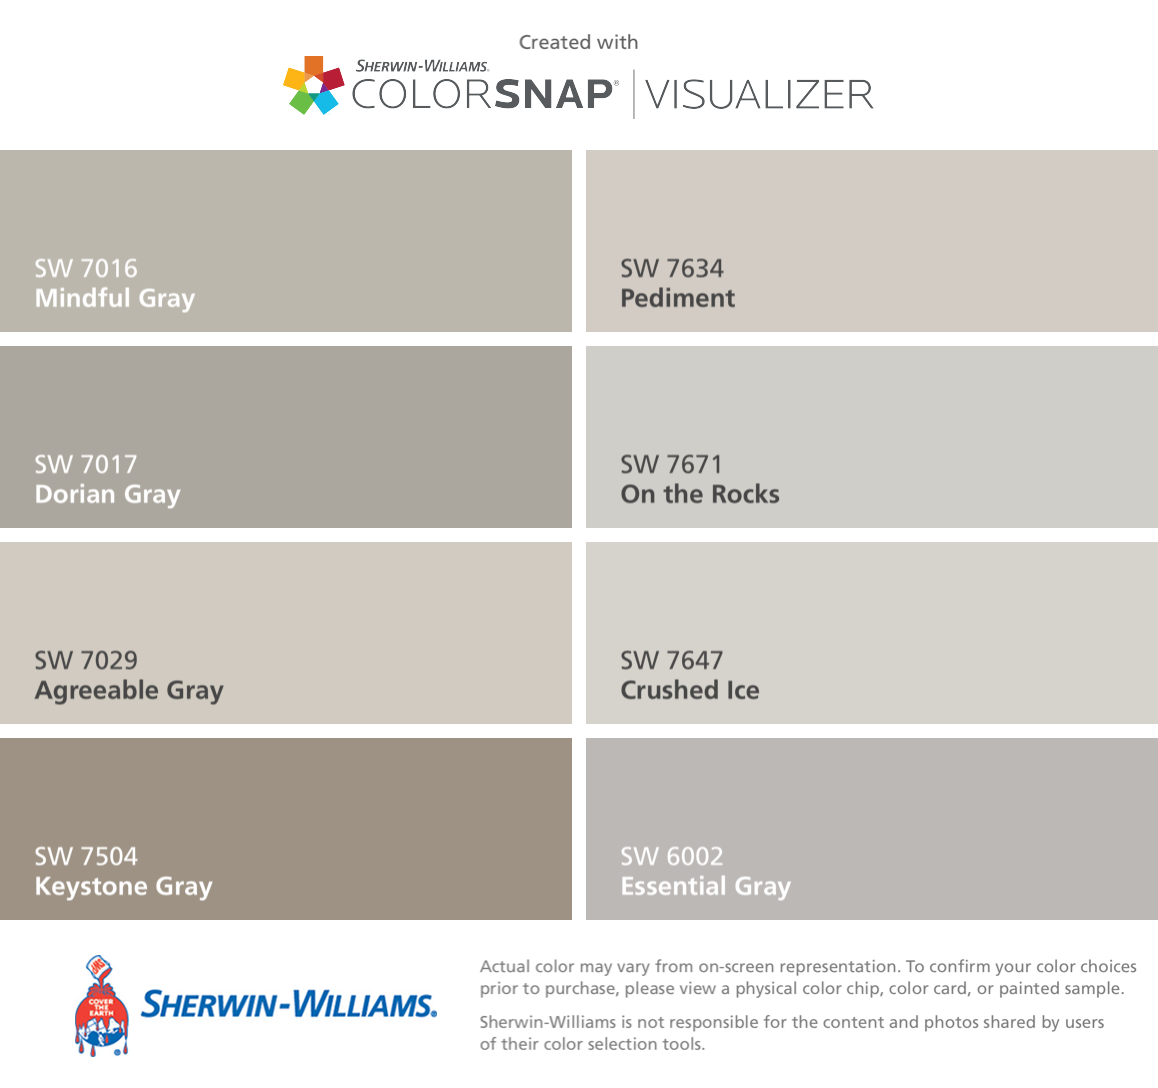 I Found These Colors With Colorsnap Visualizer For Iphone By Sherwin Williams Mindful Gray Sw 7016 Dorian 7017 Agreeable 7029